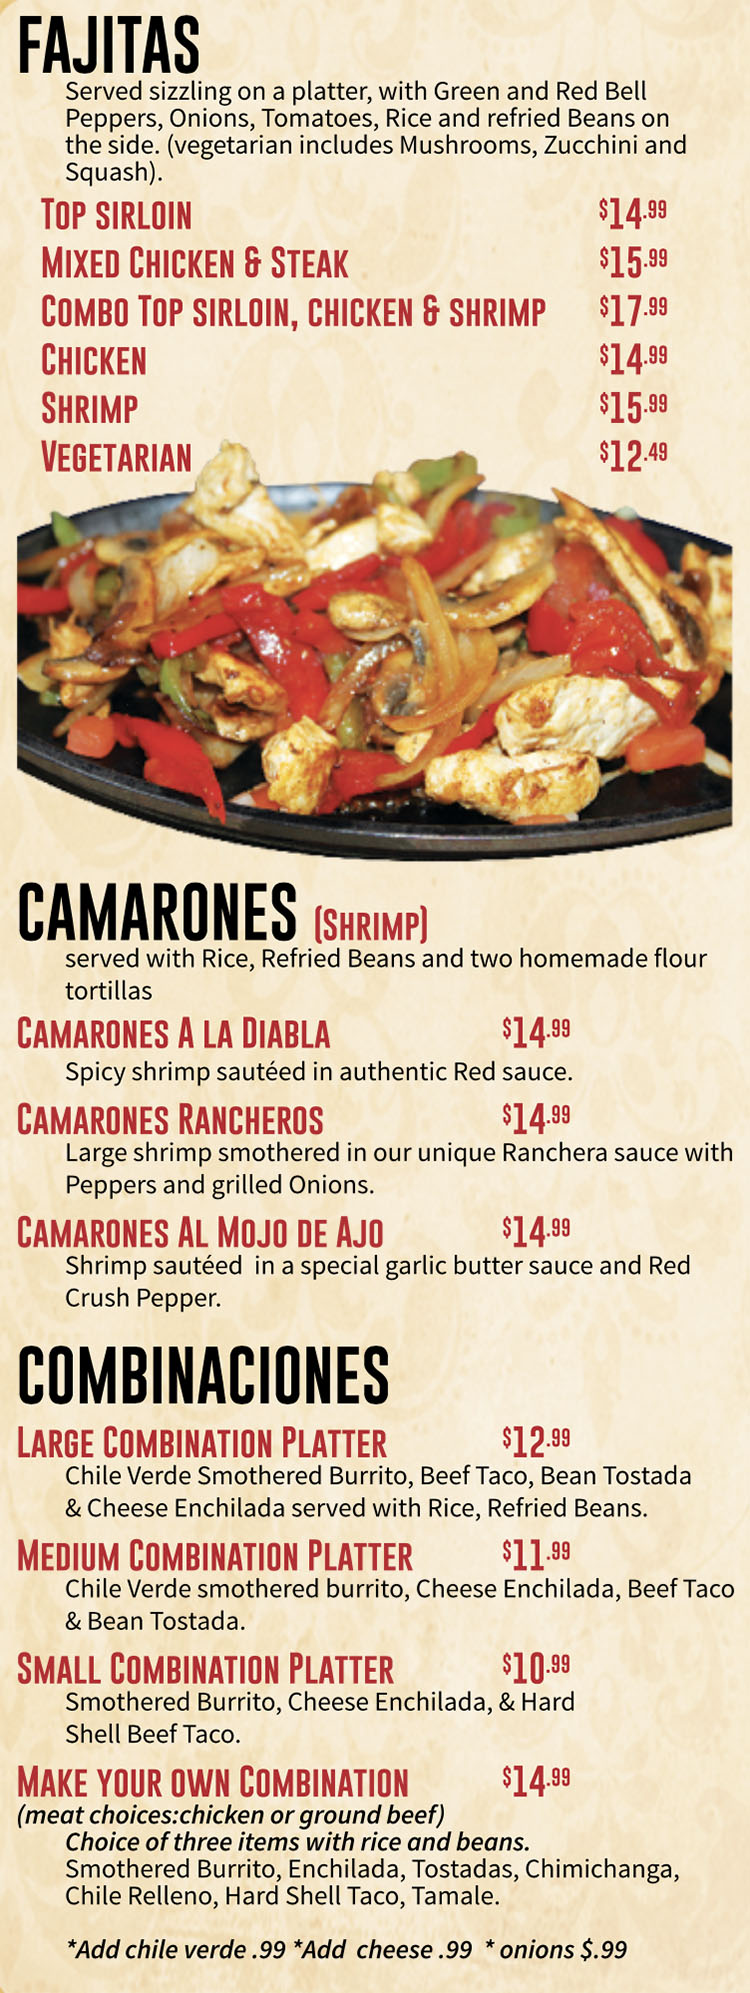 Marias Mexican Grill menu - fajitas, camarones, combinations